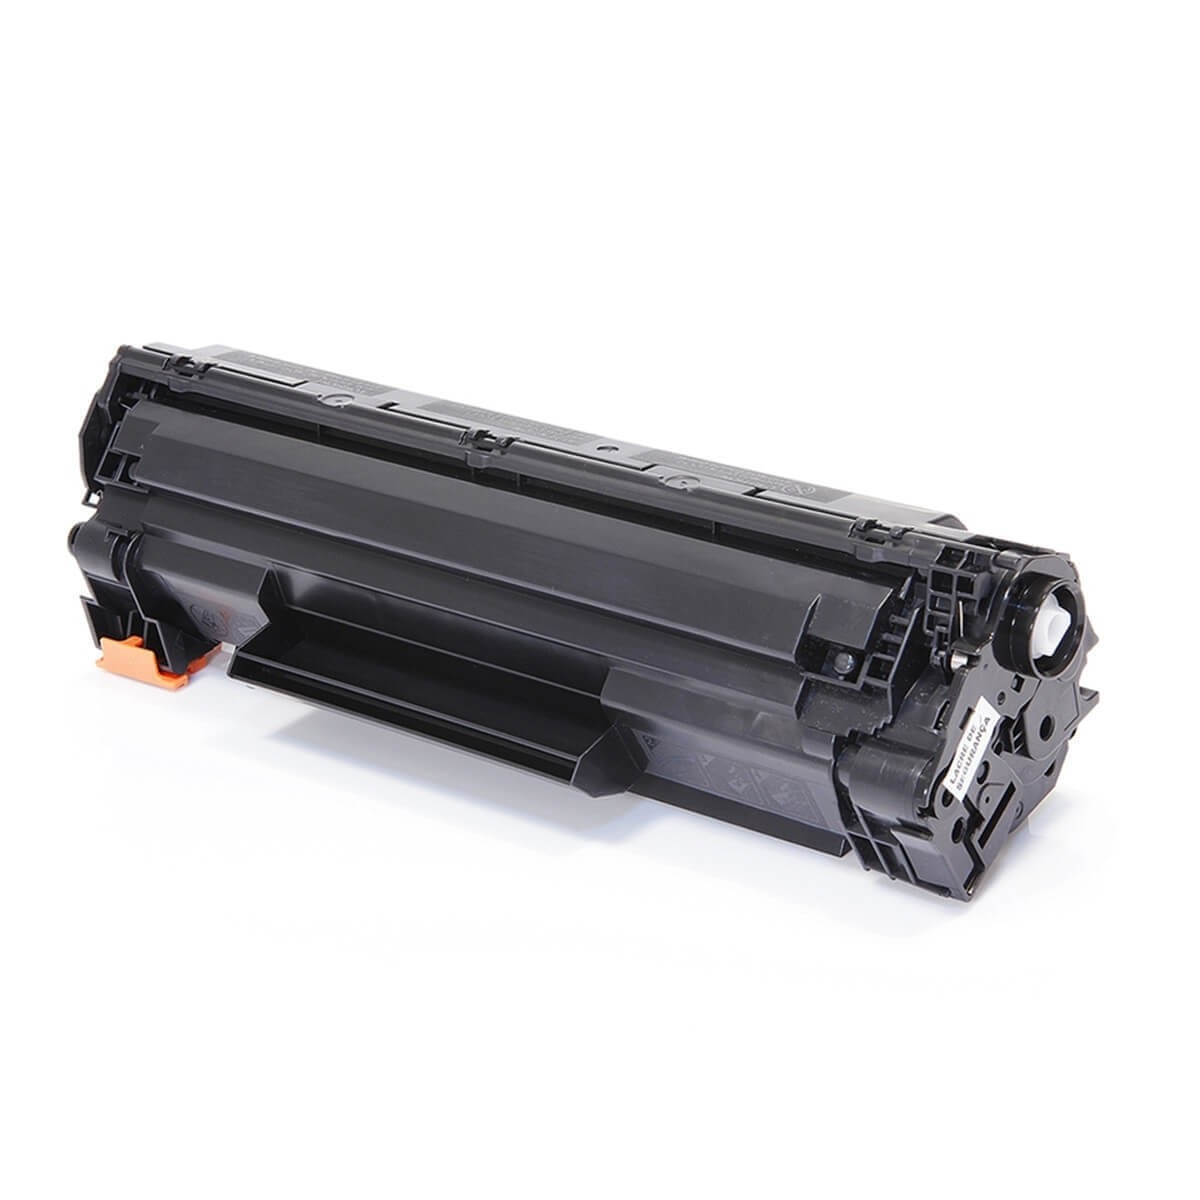 Toner HP 85A ce285a/ 35A cb435a / 36A cb436a / 78A ce278a - Compativel Byqualy